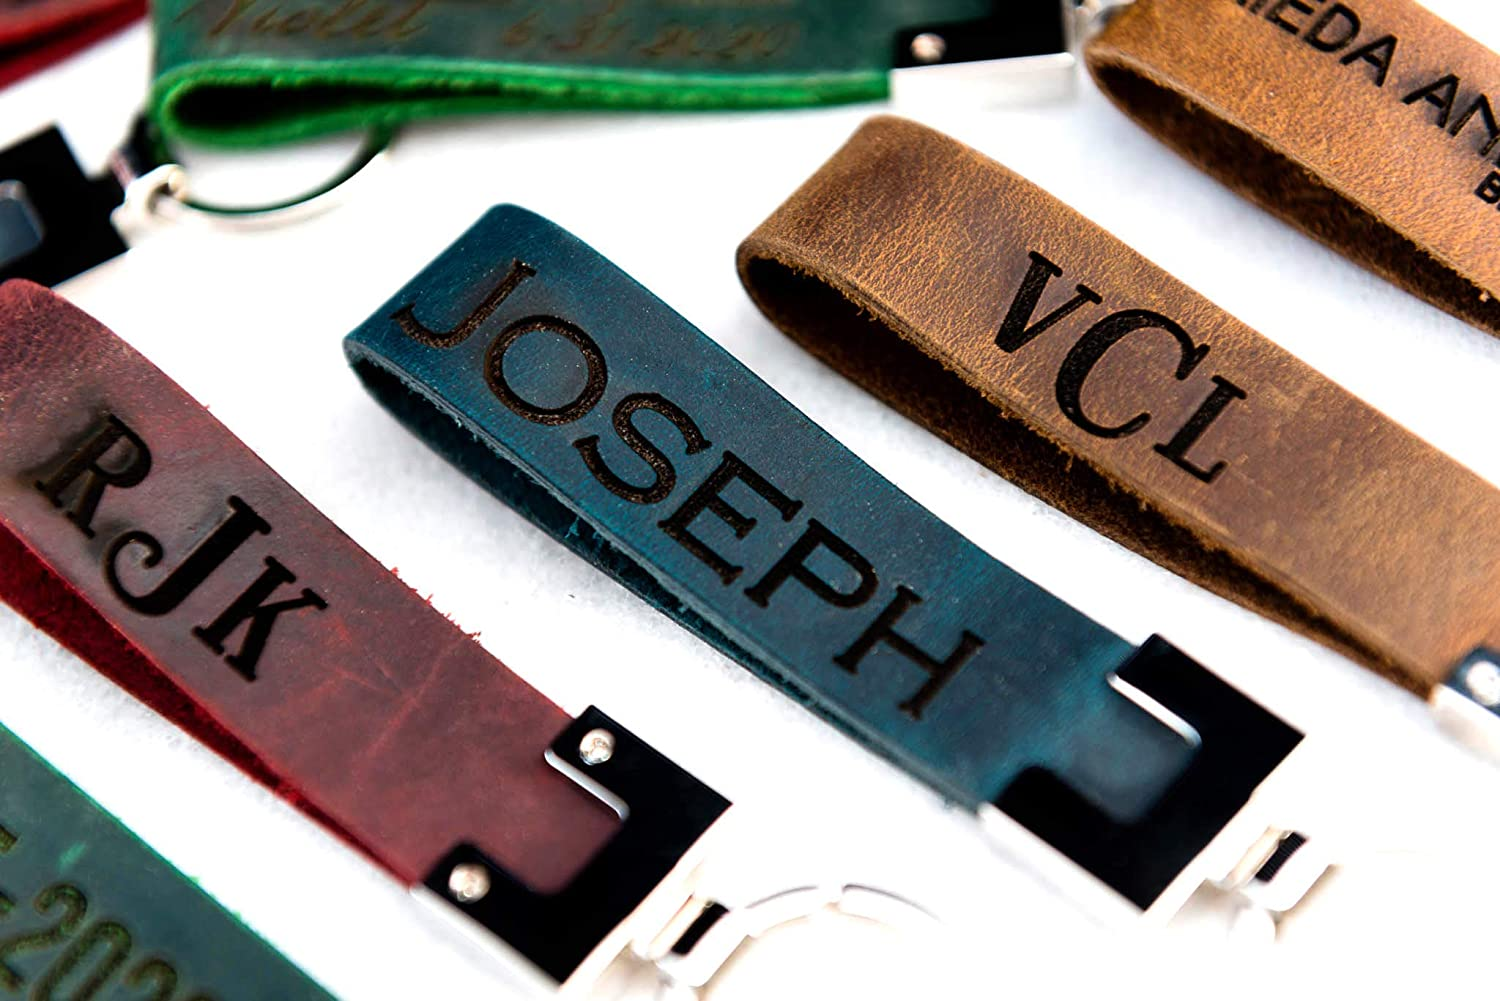 The San Blas Saddle Brown Personalized Distressed Engrave Leather Keychain